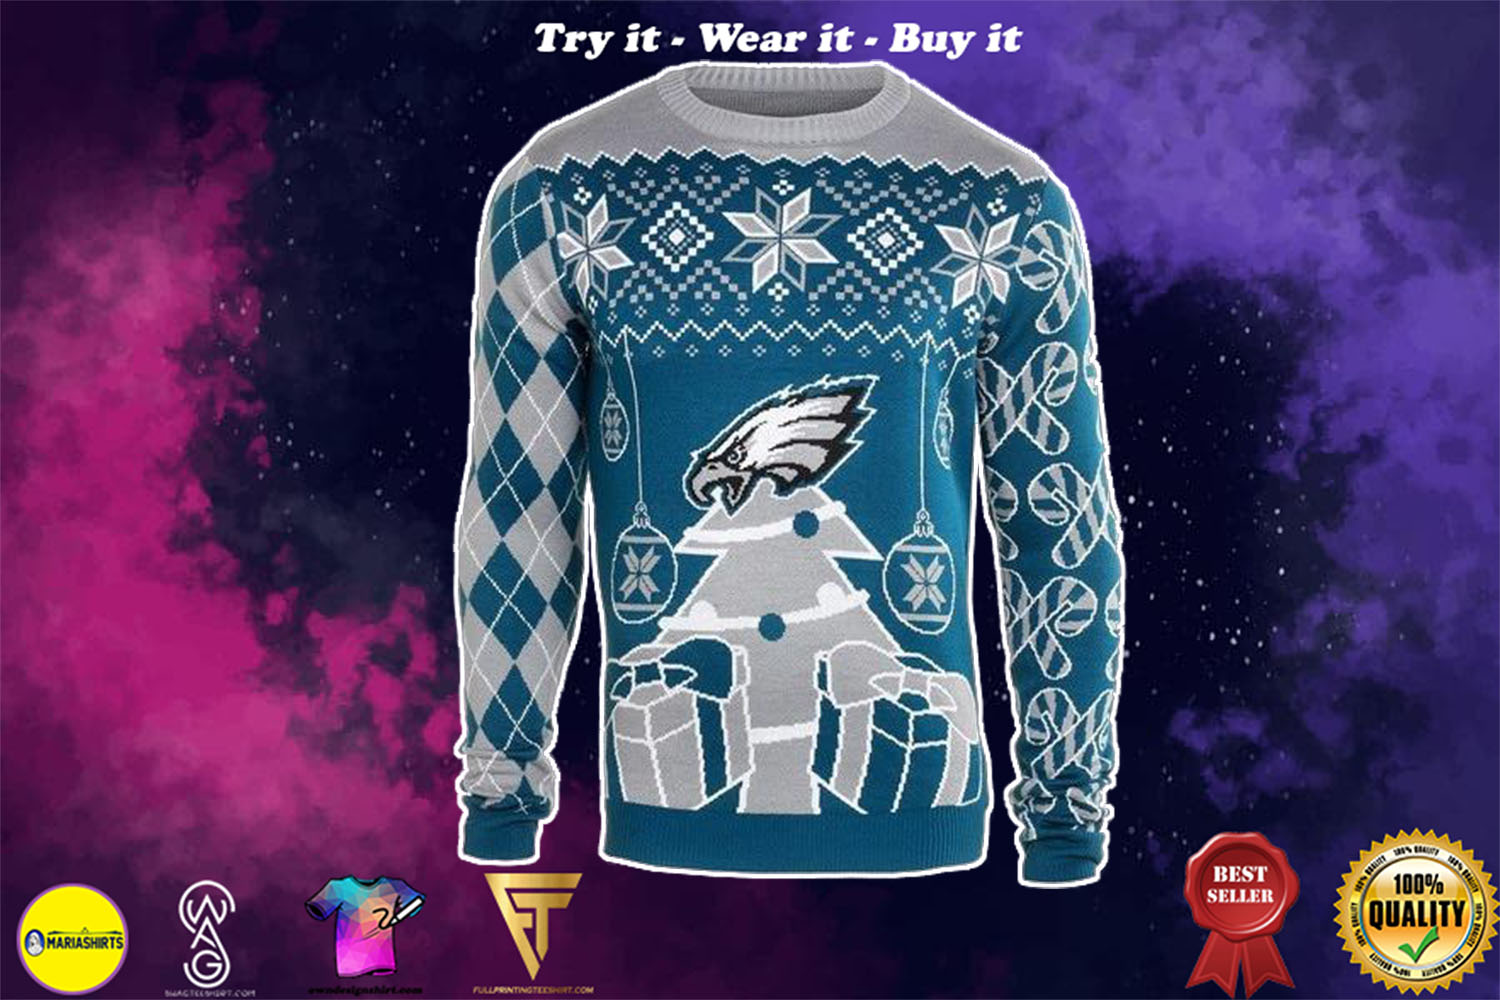 [special edition] philadelphia eagles ugly christmas sweater - maria